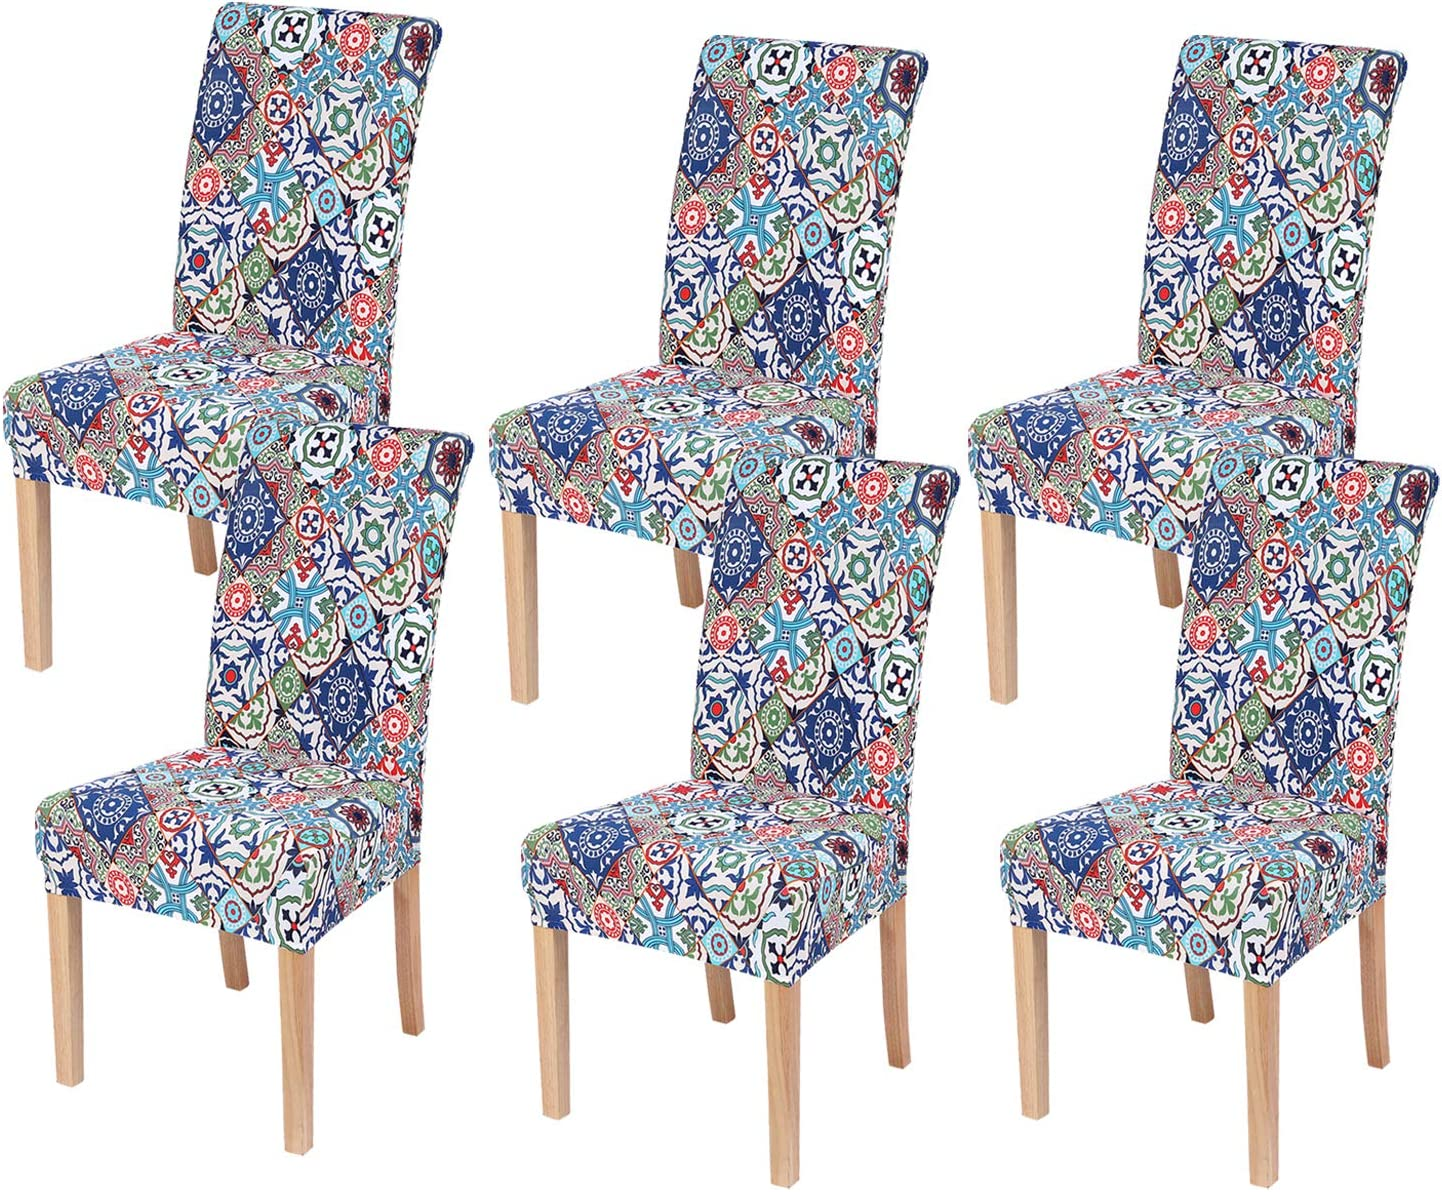 Smiry Stretch Printed Dining Chair Covers, Spandex Removable Washable Dining Chair Protector Slipcovers for Home, Kitchen, Party, Restaurant - Set of 6, Colorful Vintage